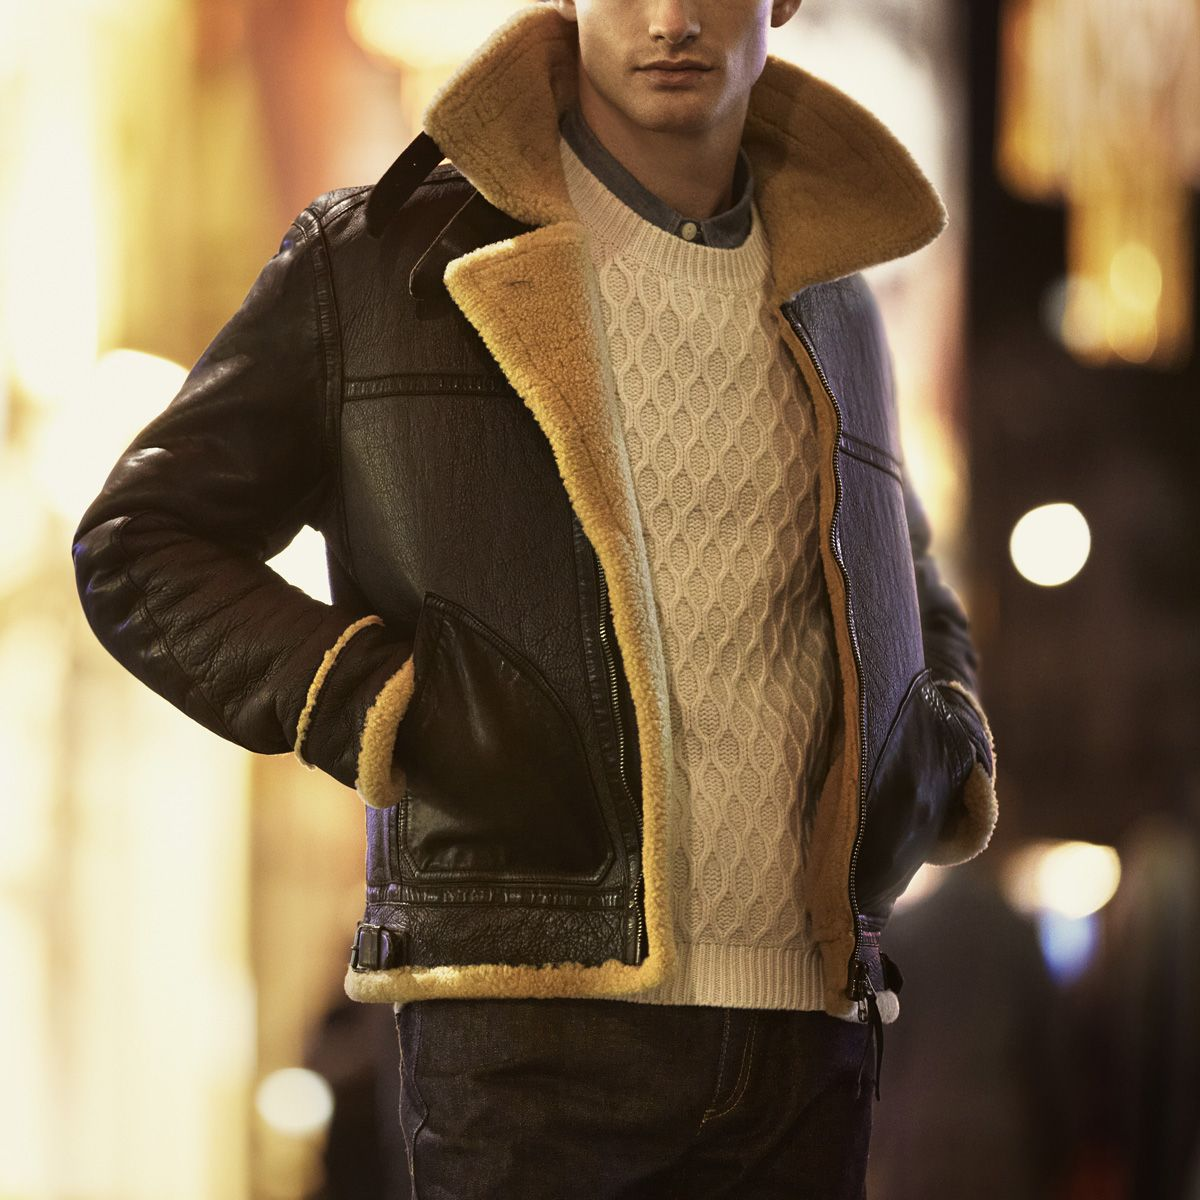 You Can T Beat A Shearling Jacket At This Time Of Year The One Featured Here Is By Belstaff And The Kn Best Leather Jackets Leather Jacket Leather Jacket Men [ 1200 x 1200 Pixel ]